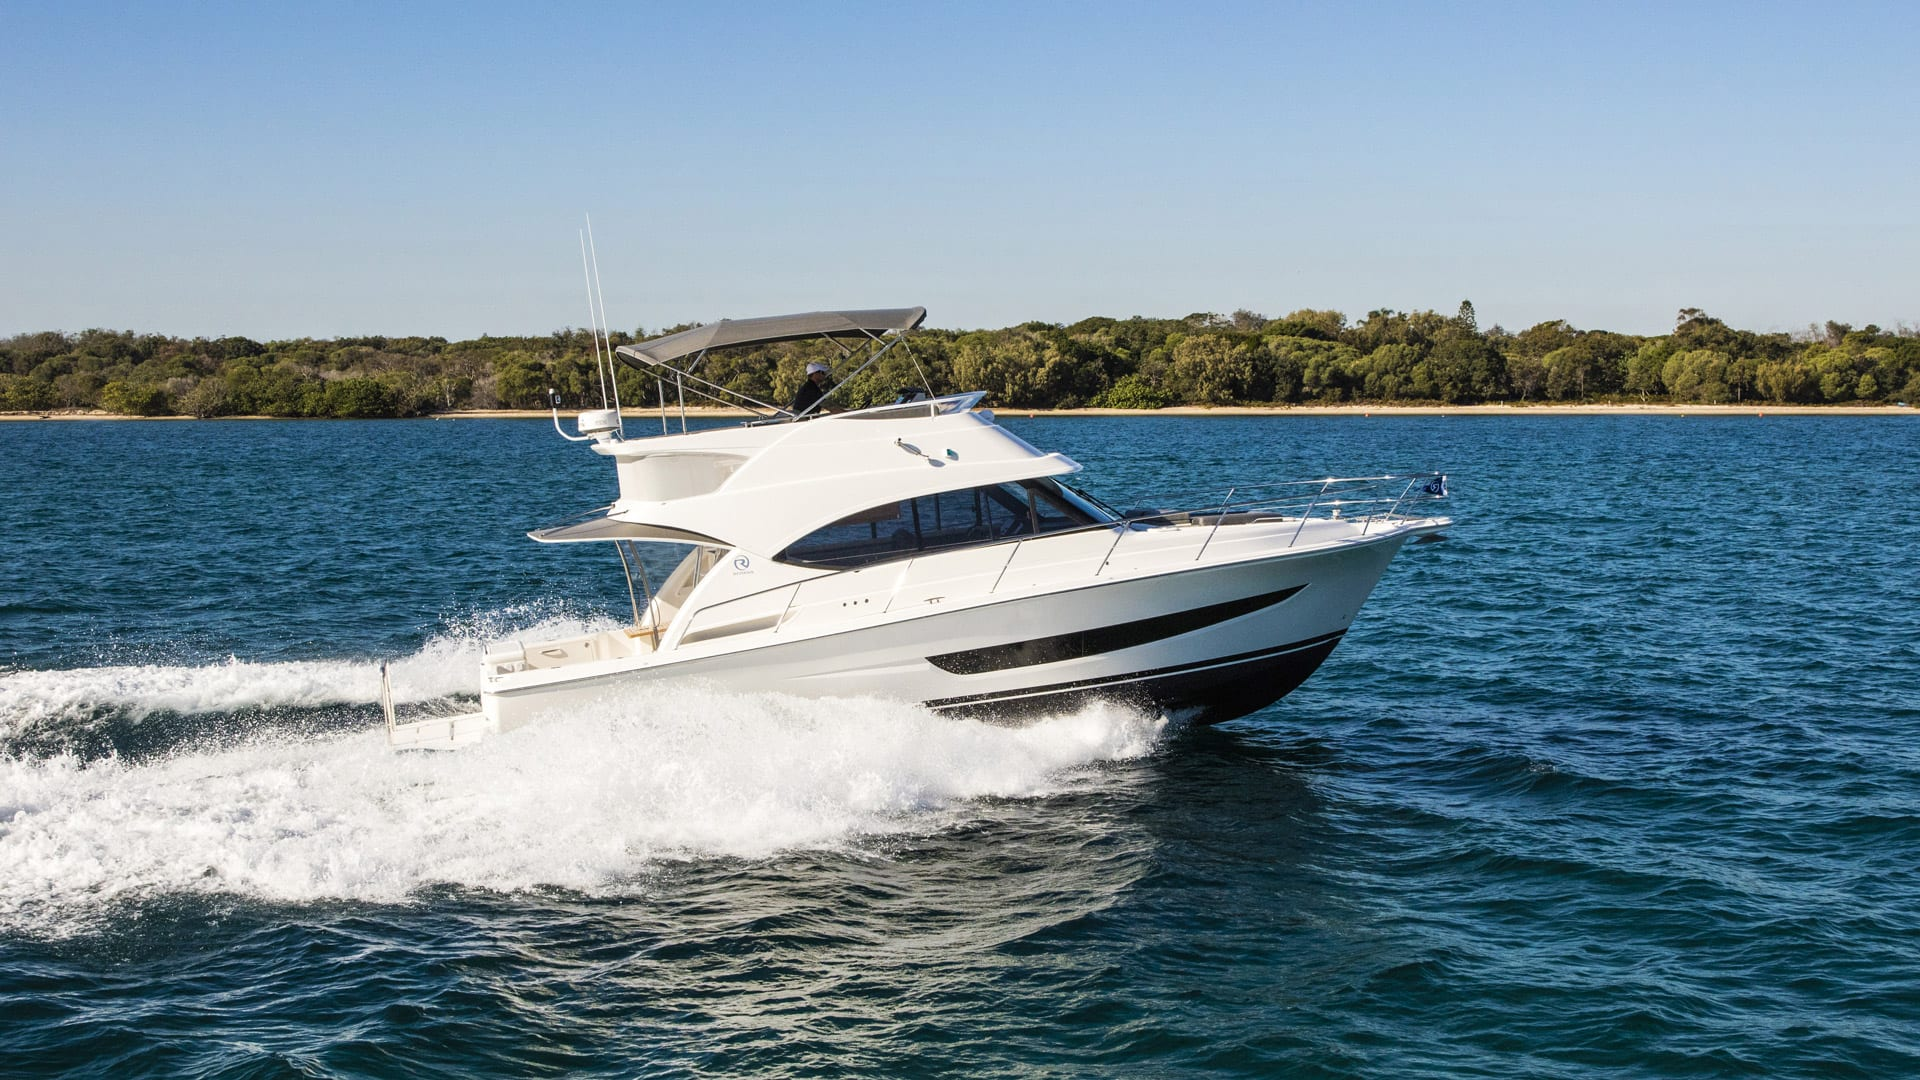 Riviera 39 Open Flybridge Running 02 Crop